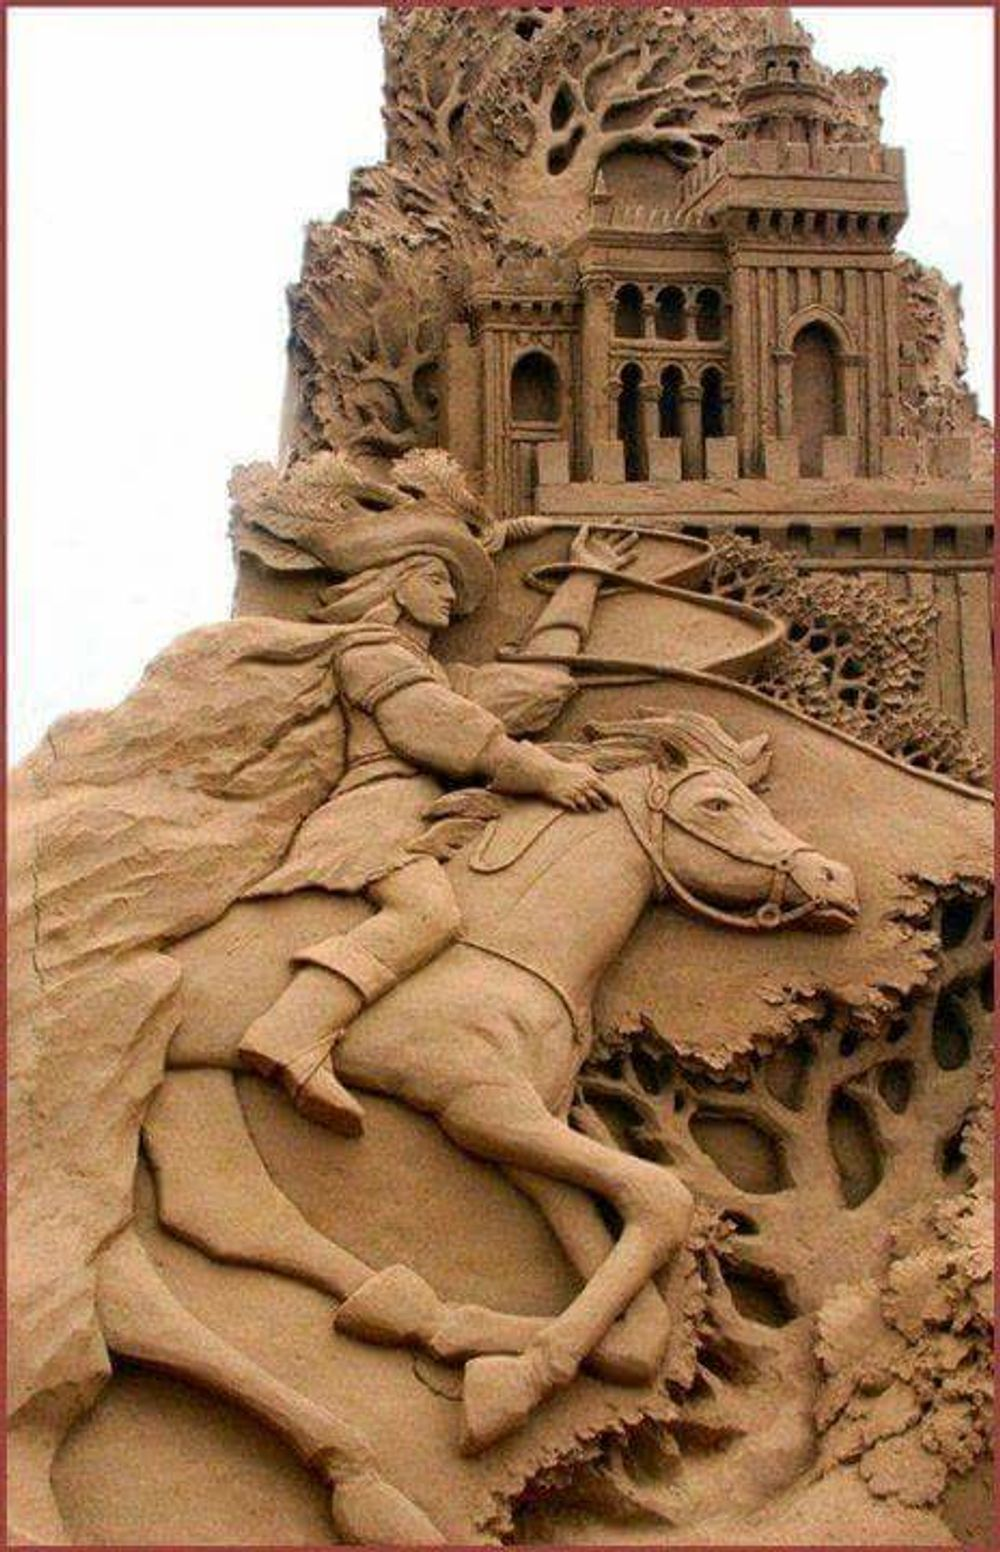 title: Sand Sculptures Amazing Art